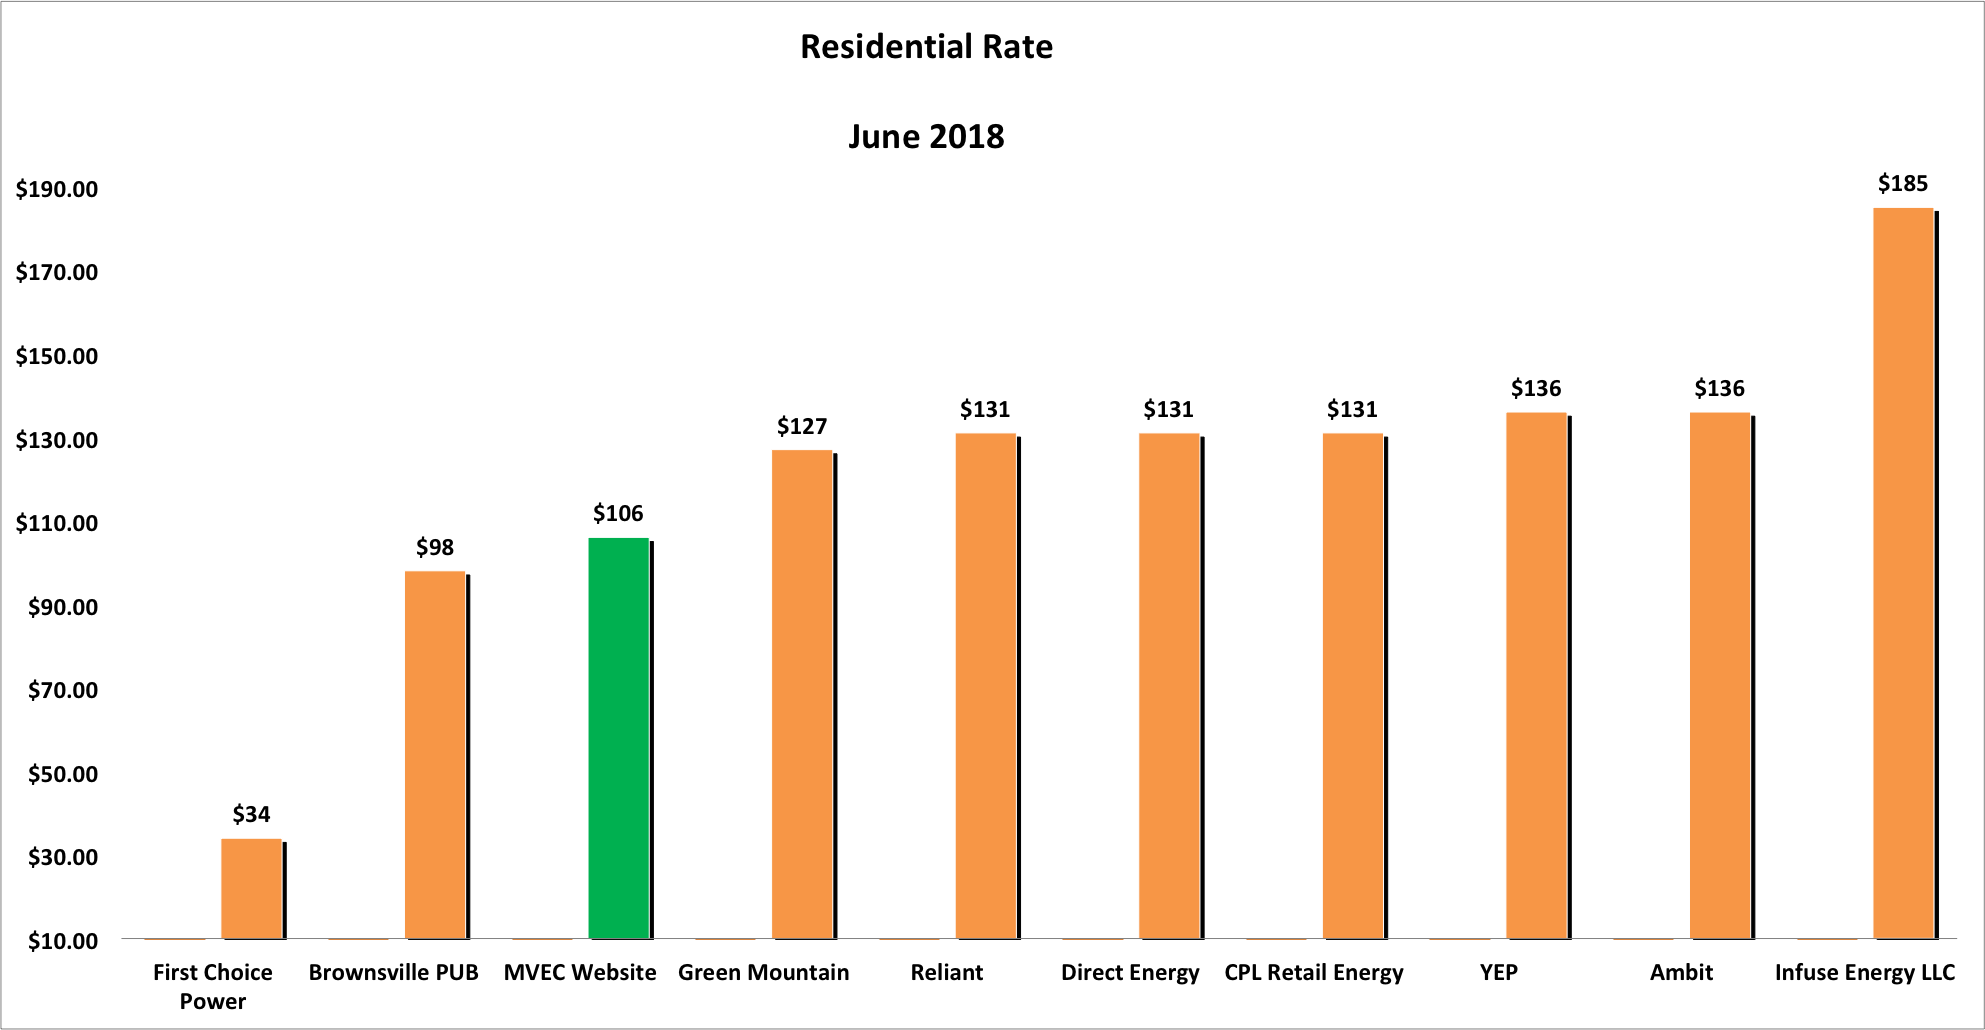 Bar graph showing Residential Rates for June 2018